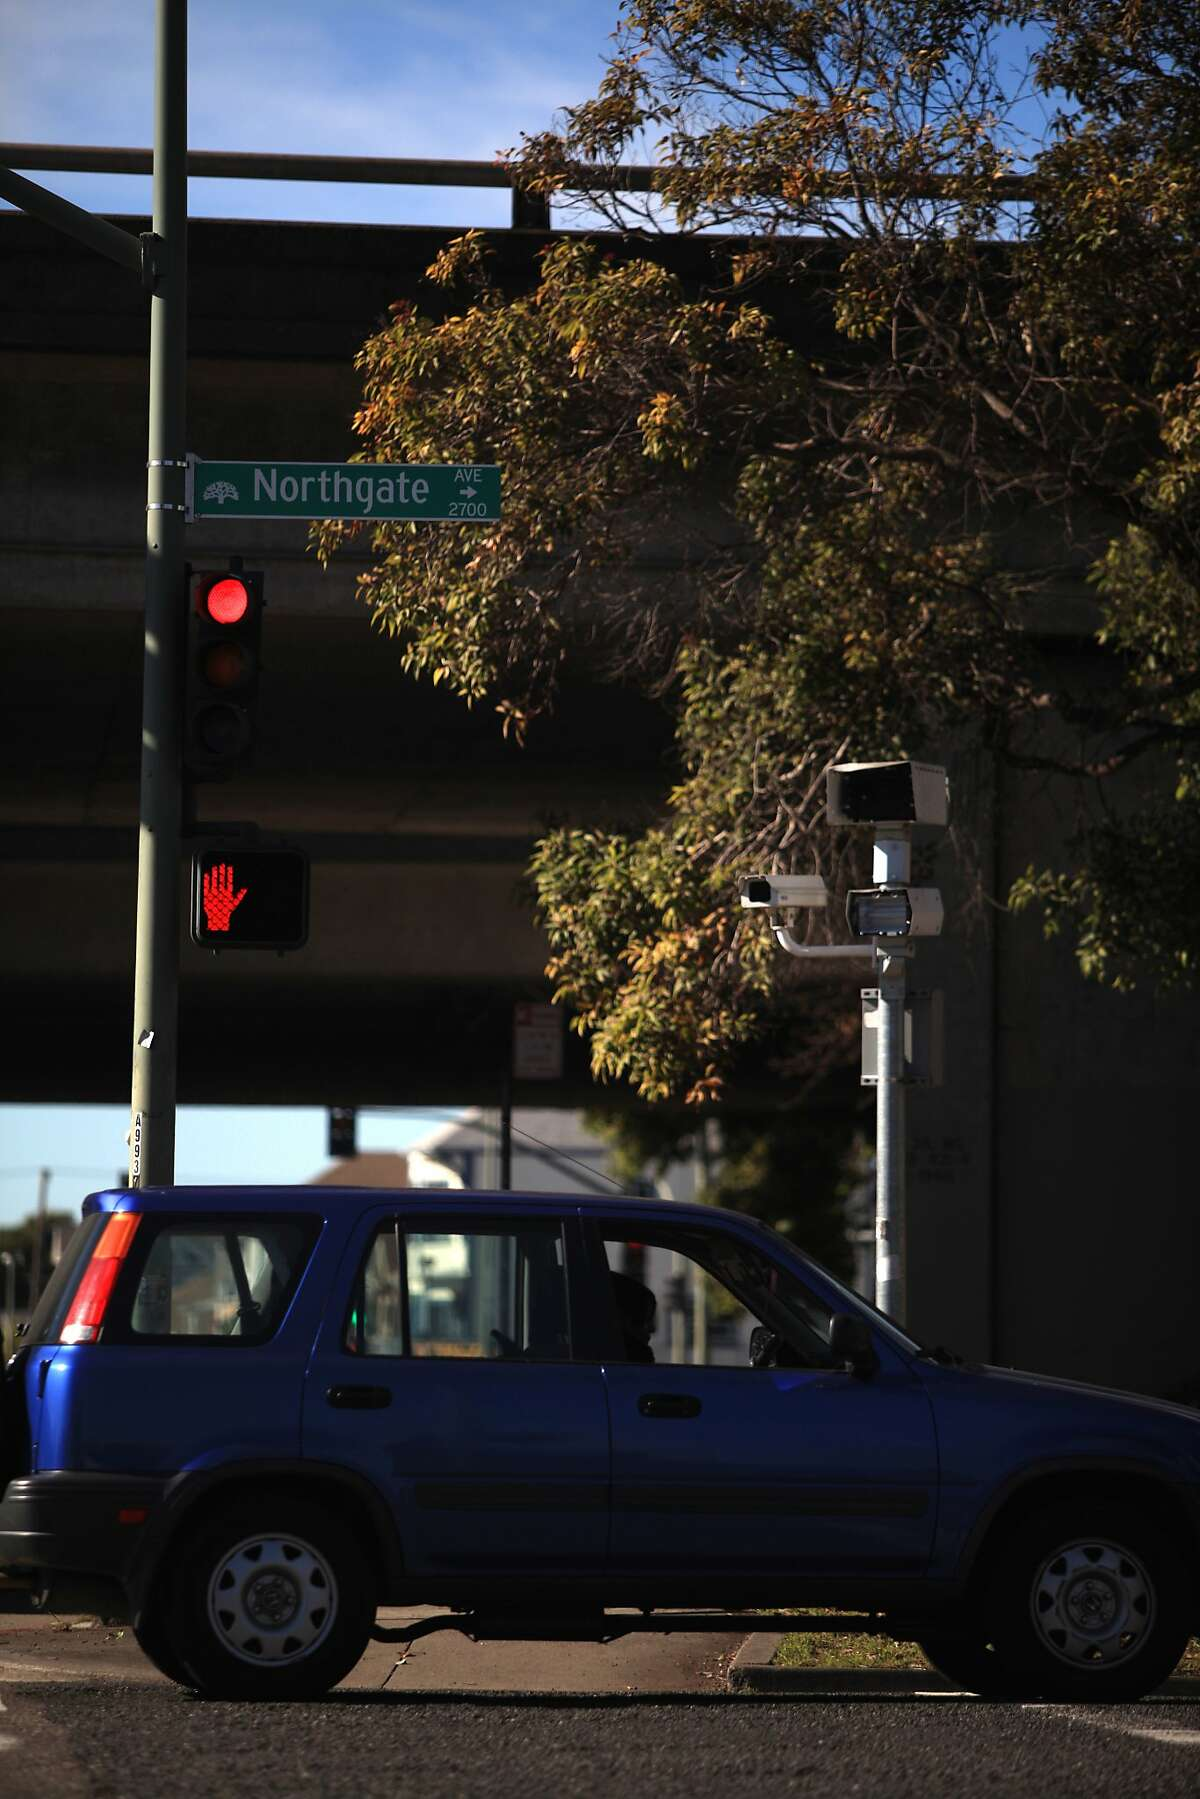 A red light camera unit is seen at the 27th St. and Northgate Avenue next to an on ramp to I-580 on Thursday, February 2, 2012 in Oakland, Calif.